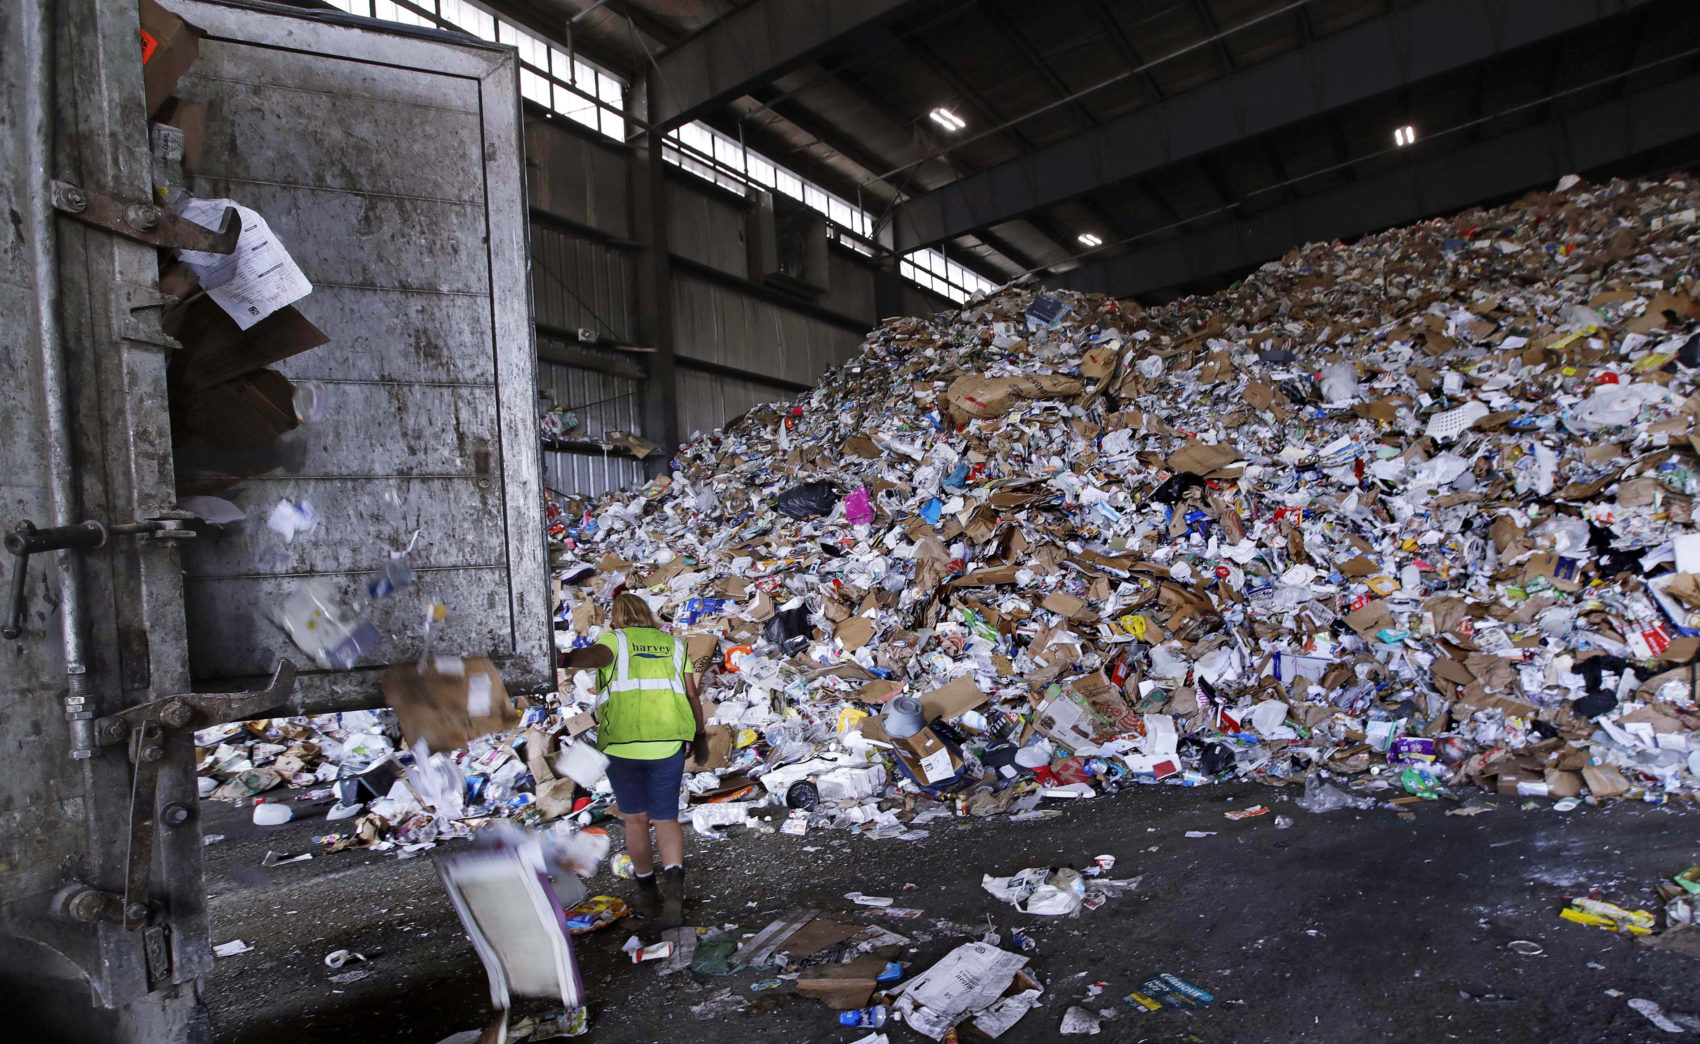 In this 2018 file photo, a trailer door is opened on a truck filled with unsorted recyclable refuse as it is offloaded and added to a giant pile in a processing building at EL Harvey & Sons, a waste and recycling company in Westborough. (Charles Krupa/AP)